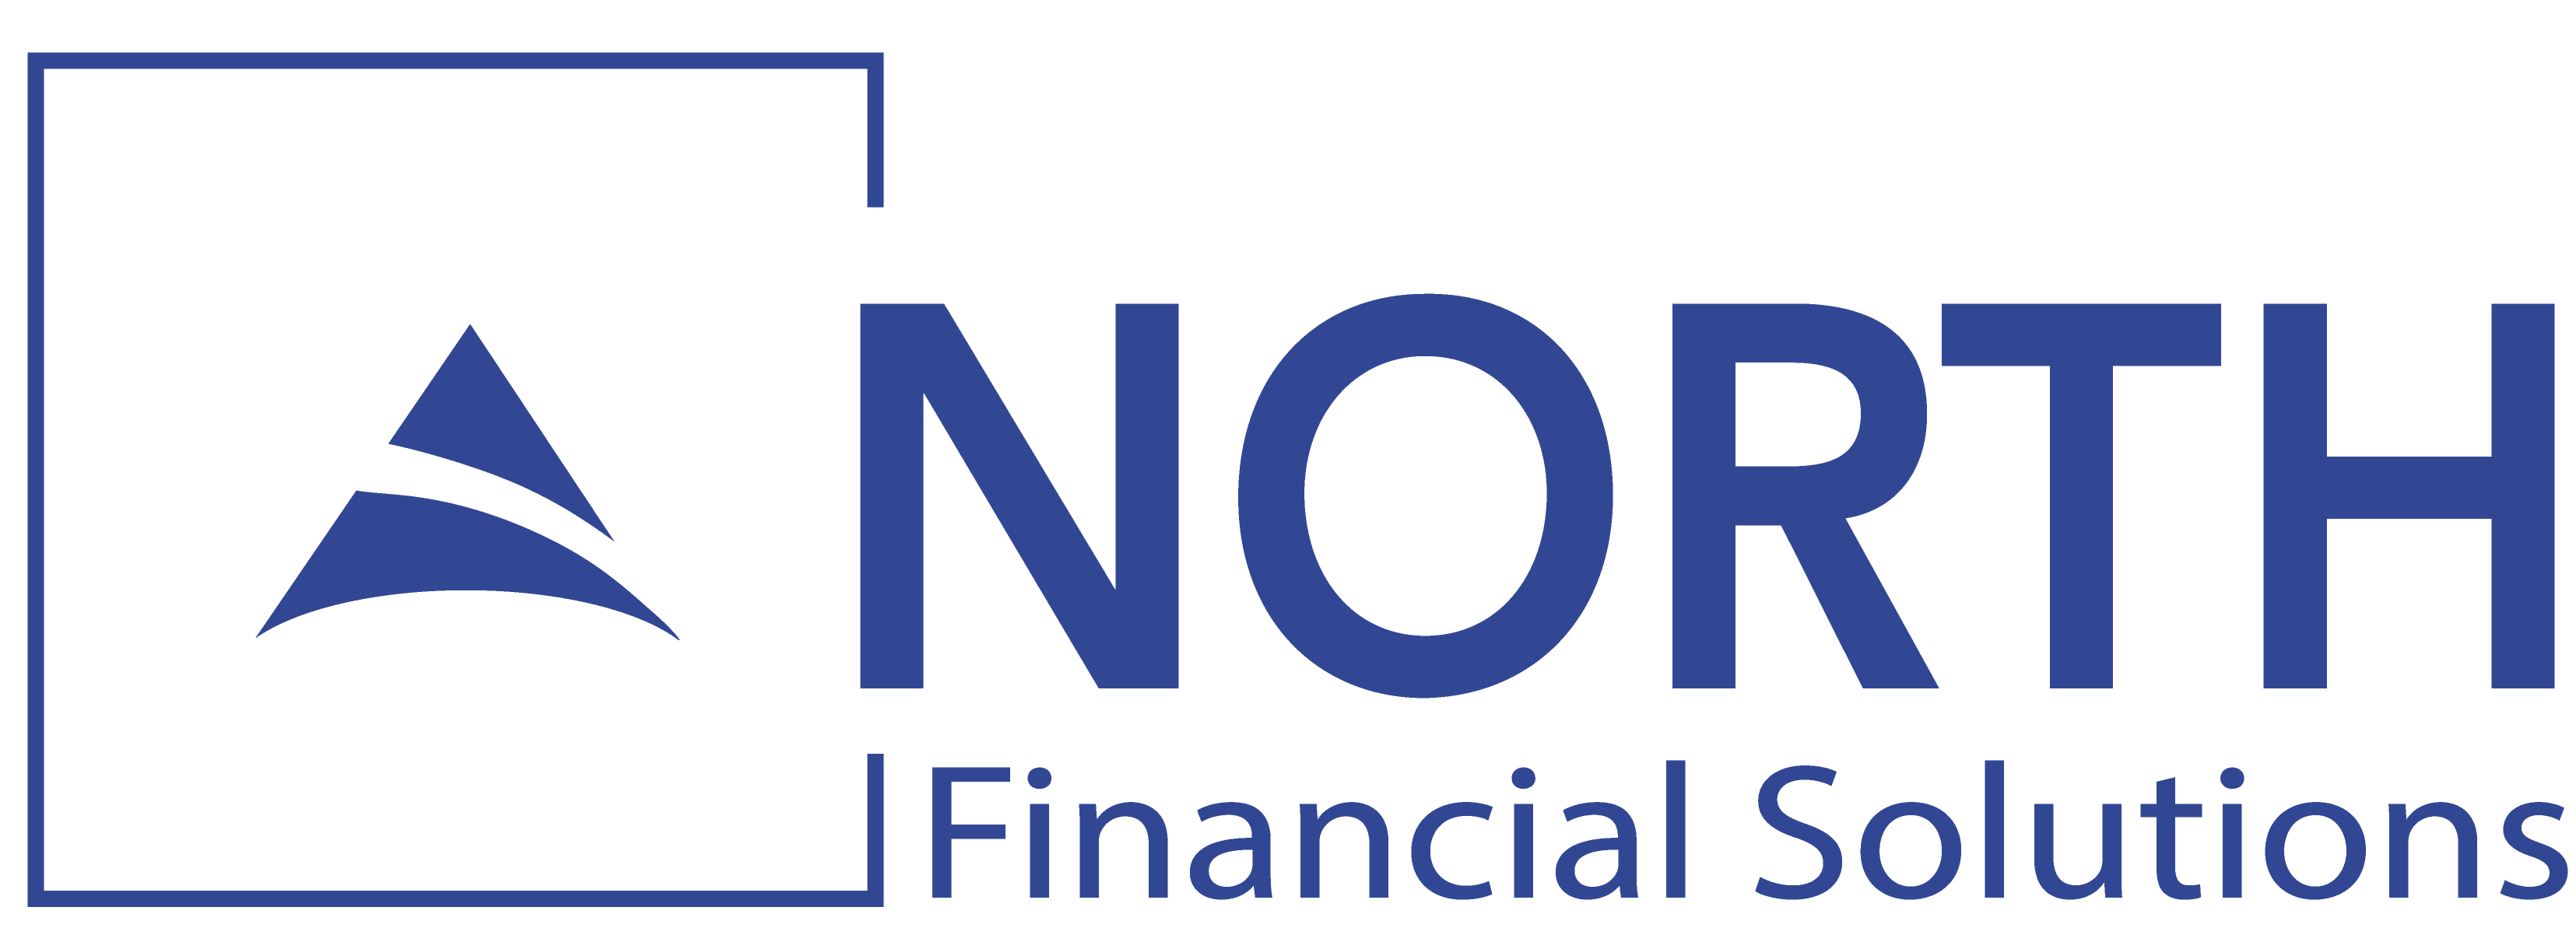 NORTH_FINANCIAL_SOLUTIONS_BLUE